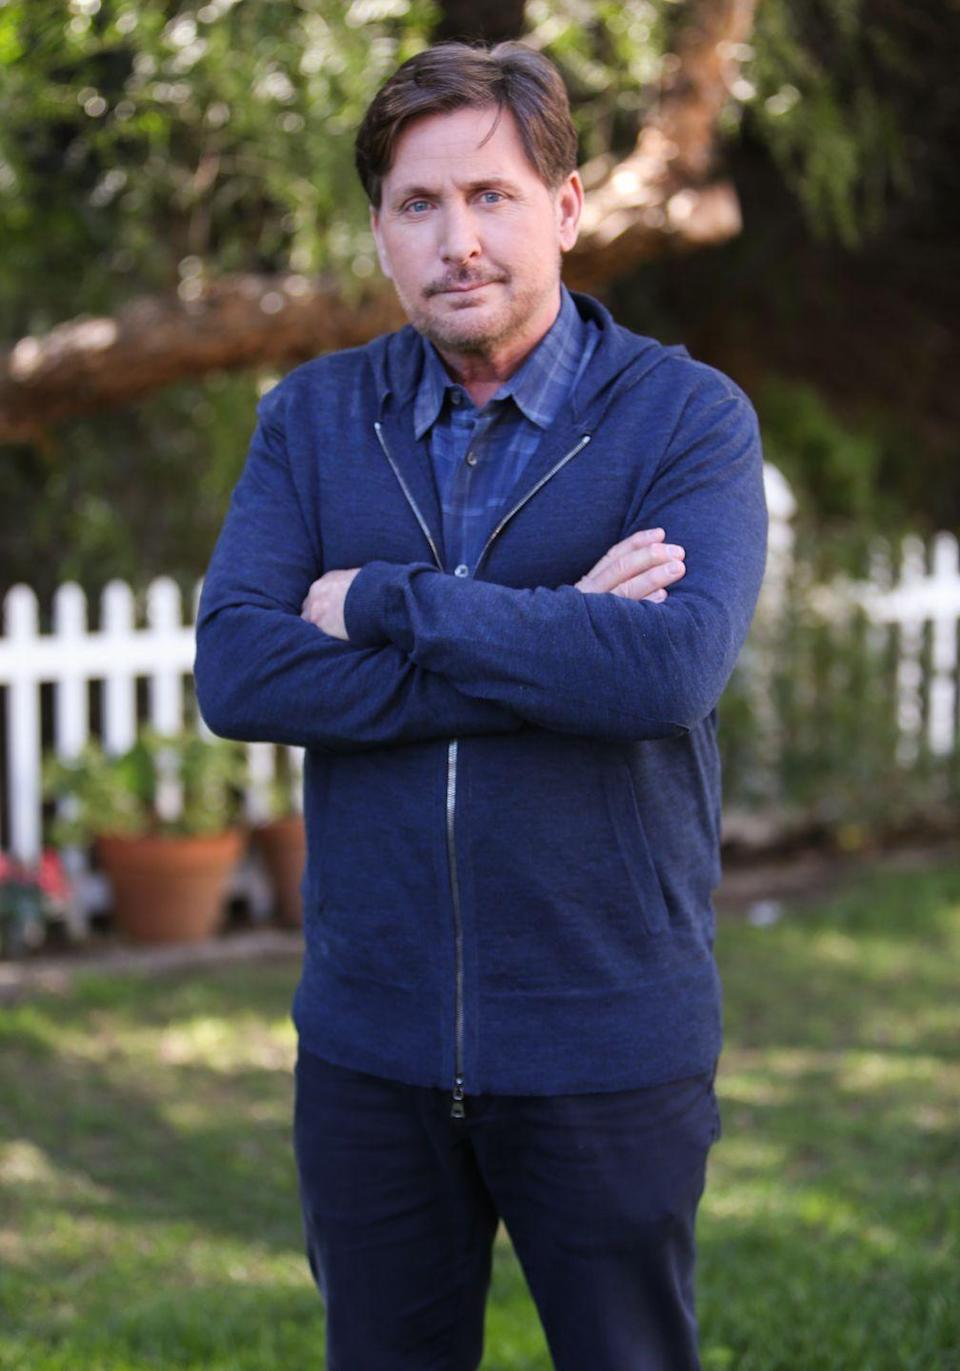 <p>Throughout the '90s, Emilio starred in <em>The Might Ducks</em> series as the coach. In the 2000s, he's tried his hand at directing, including working on popular television shows <em>Cold Case</em>, <em>CSI: NY,</em> and <em>Numb3rs</em>.</p>